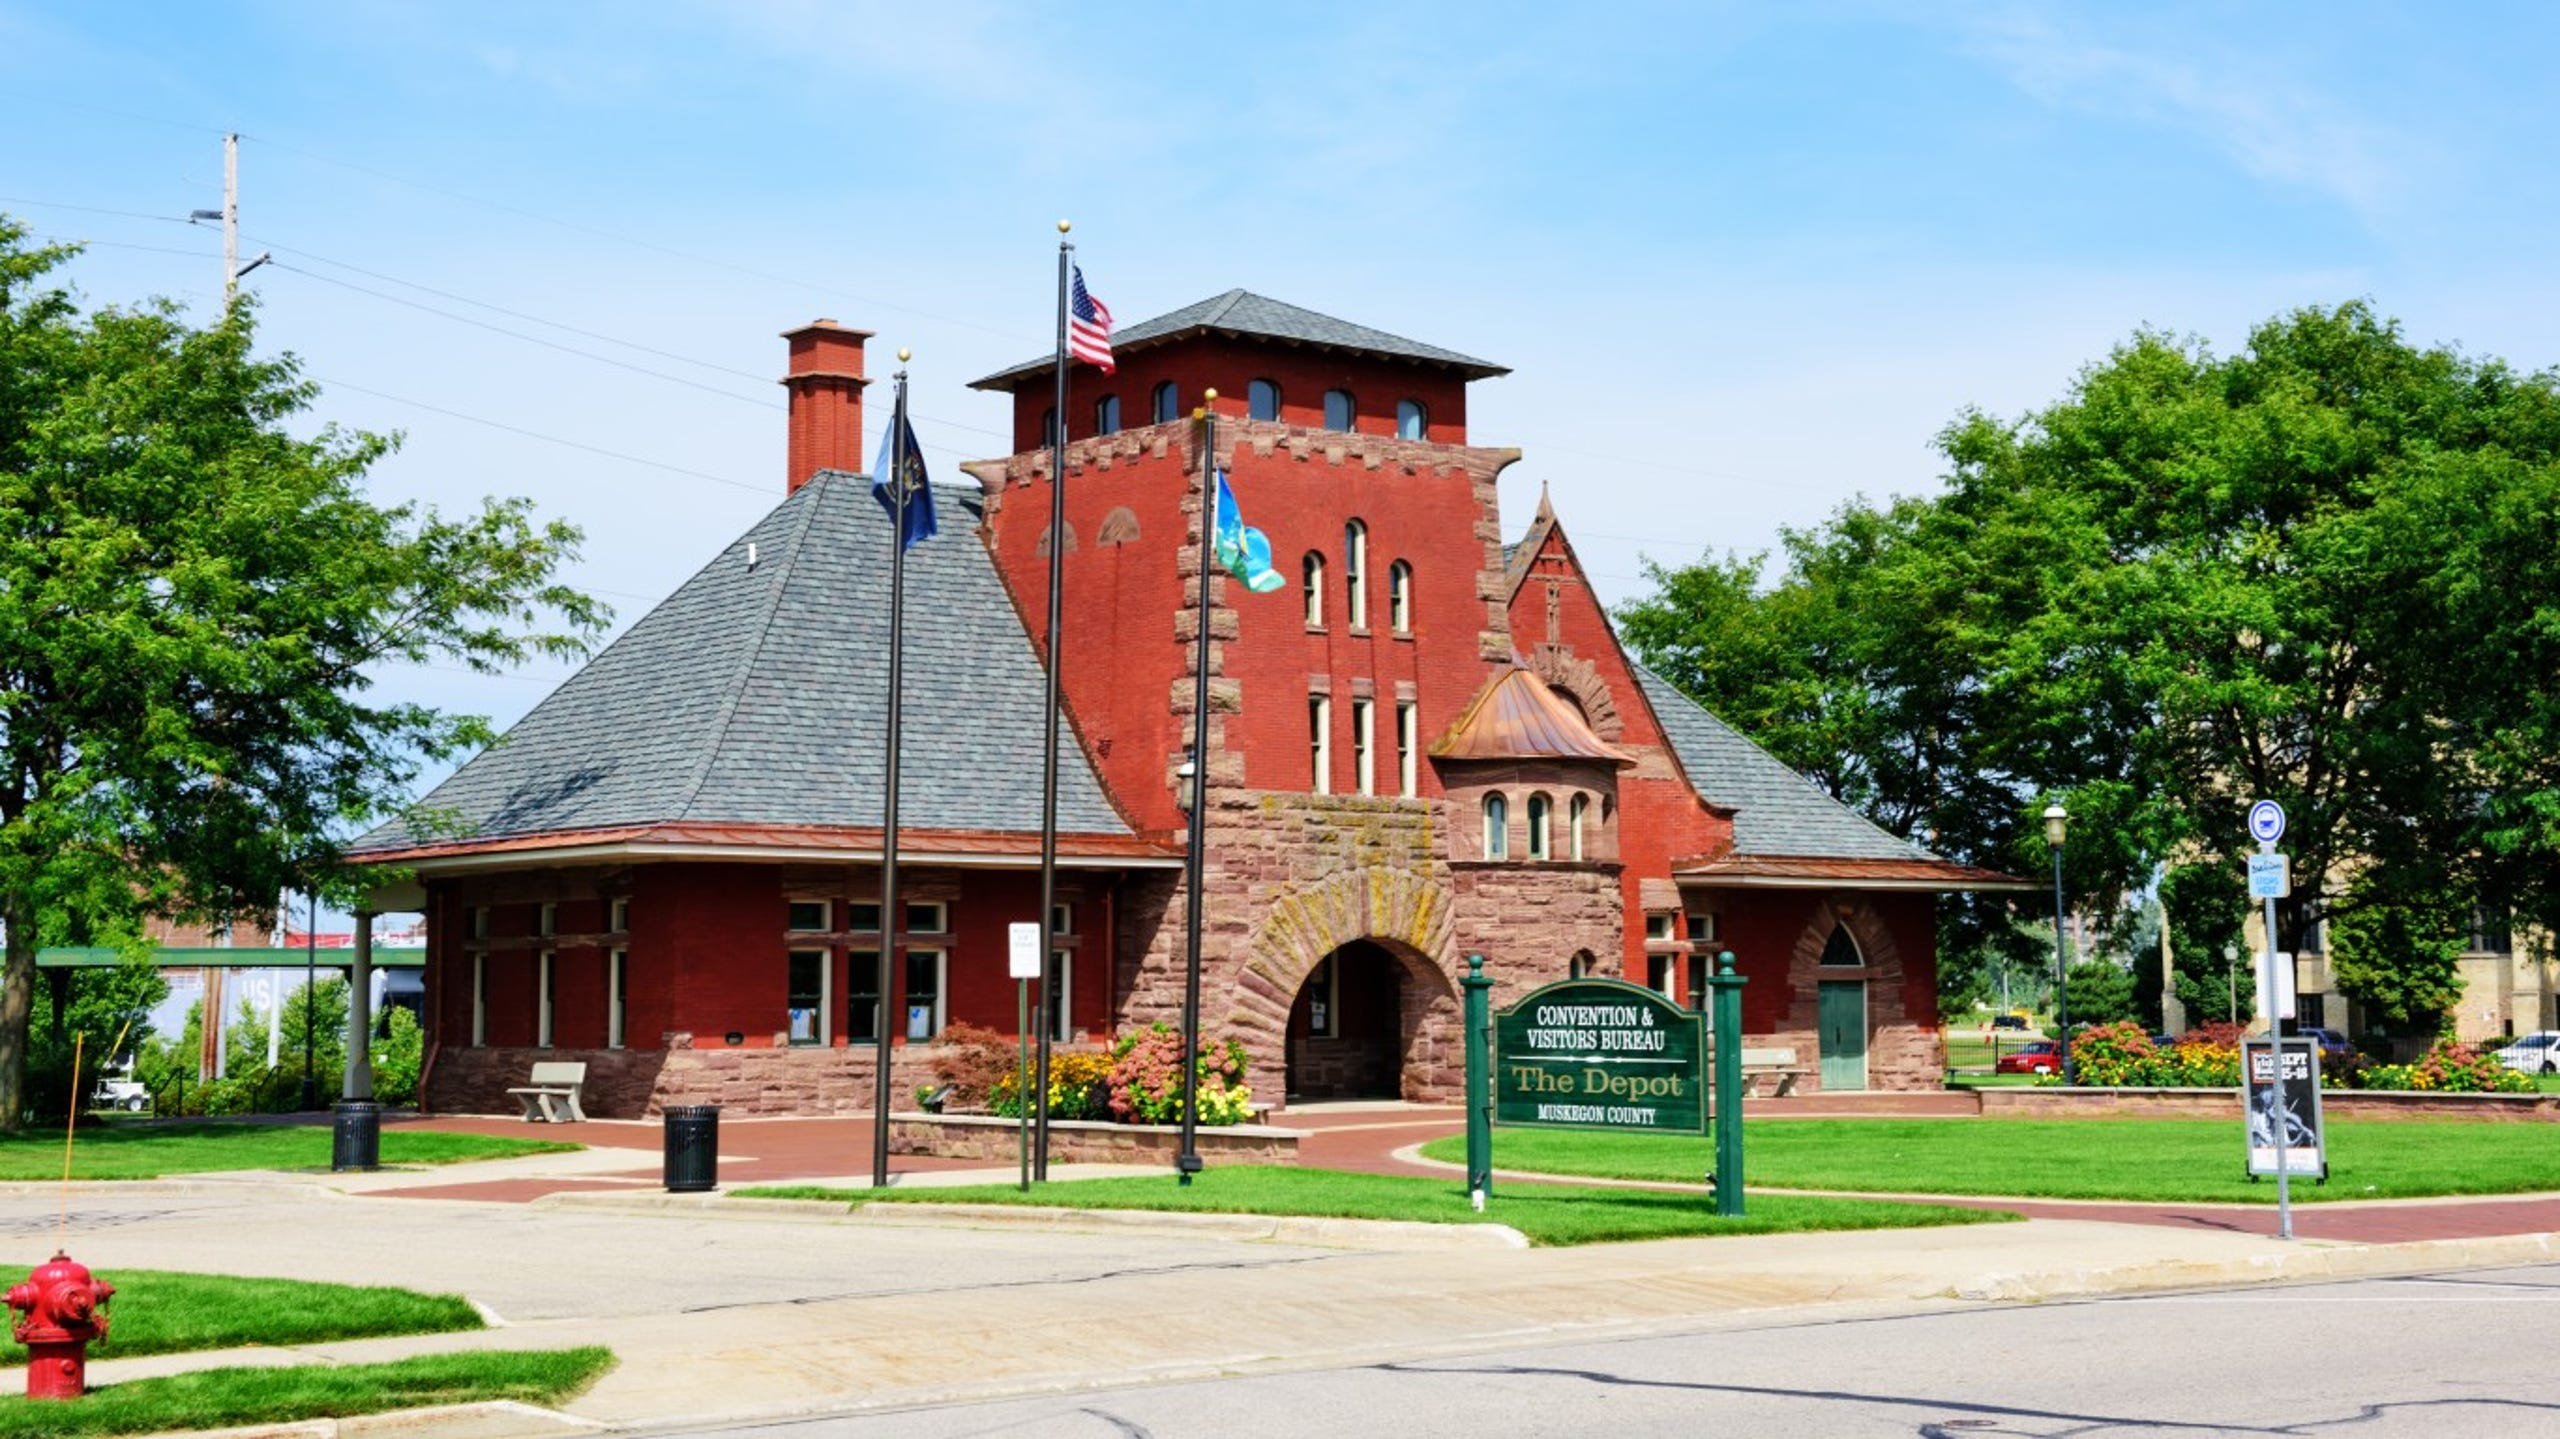 <strong>19. Muskegon, Michigan</strong><br /> <strong>&bull; Preschool enrollment:</strong> 24.7% (lowest 10%)<br /> <strong>&bull; High school graduation rate:</strong> 80.6% (lowest 20%)<br /> <strong>&bull; Pop. with access to areas for exercise:</strong> 77.4%<br /> <strong>&bull; Property crime rate:</strong> 3,354 crimes per 100,000 people (highest 20%)